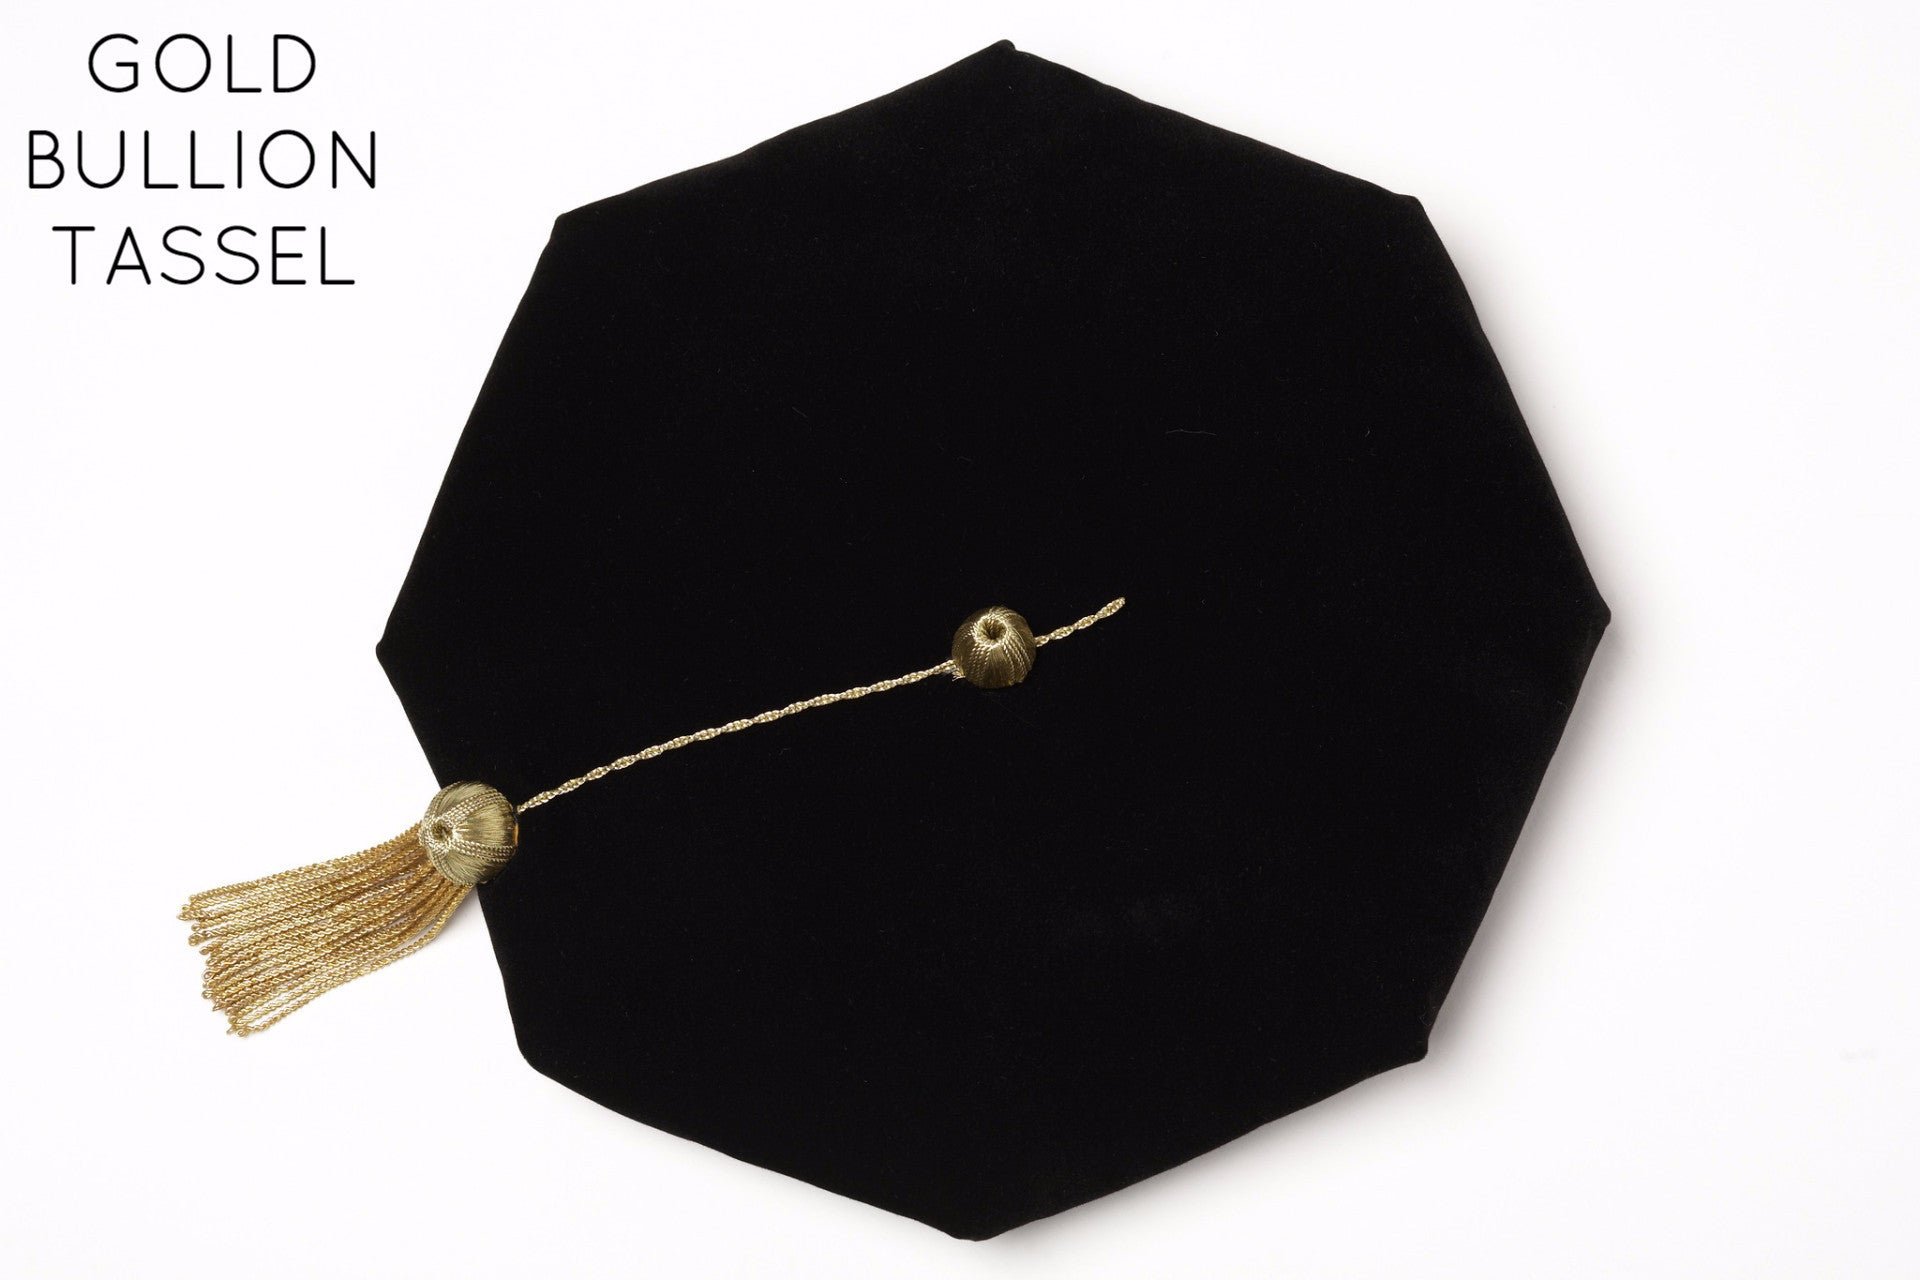 Stanford PhD Graduation Cap (Tam) Black Velvet with Gold Bullion Tassel